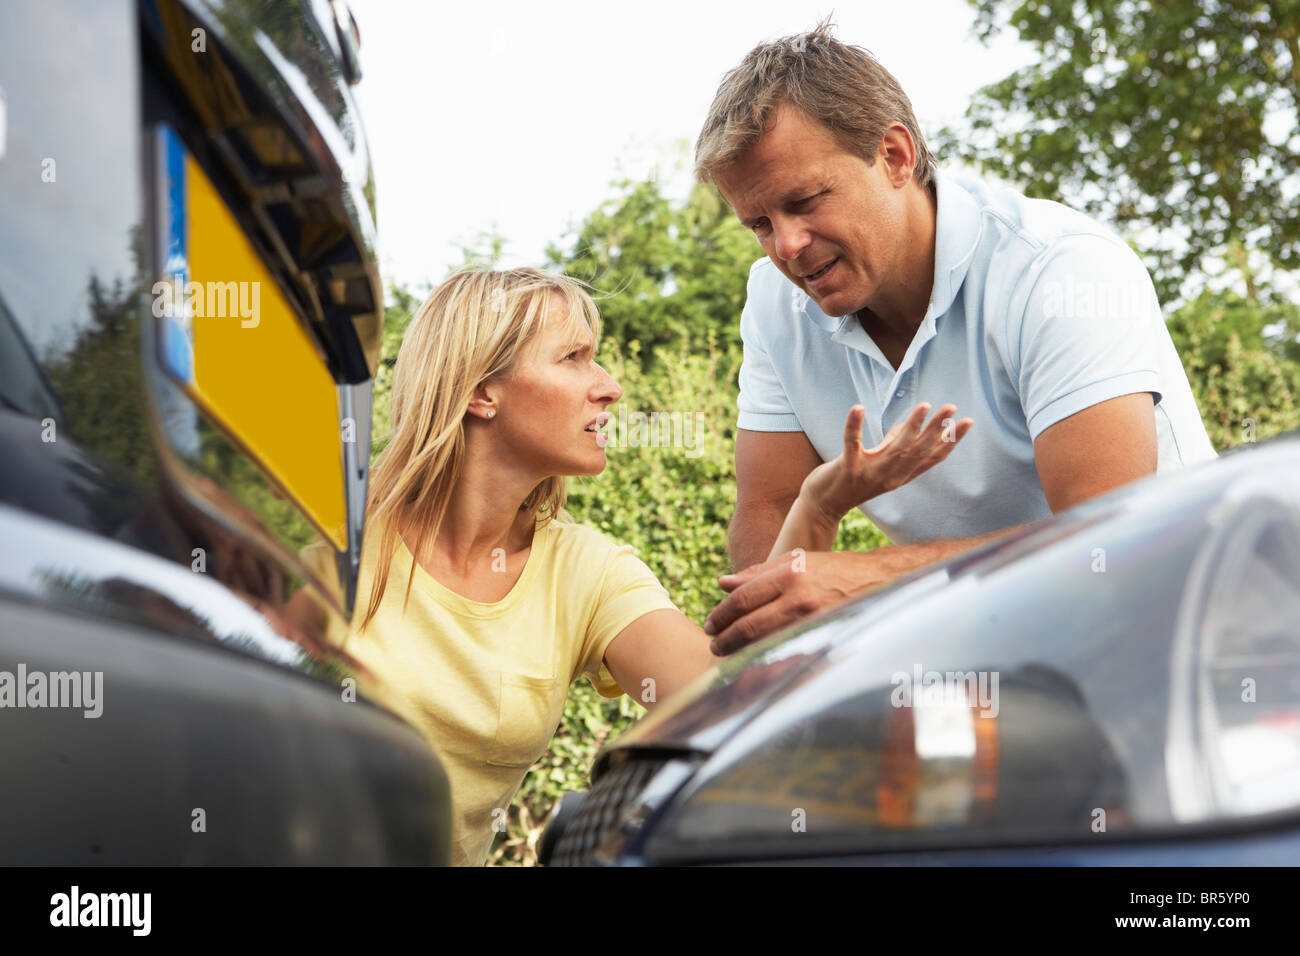 Man And Woman Having Argument After Traffic Accident - Stock Image